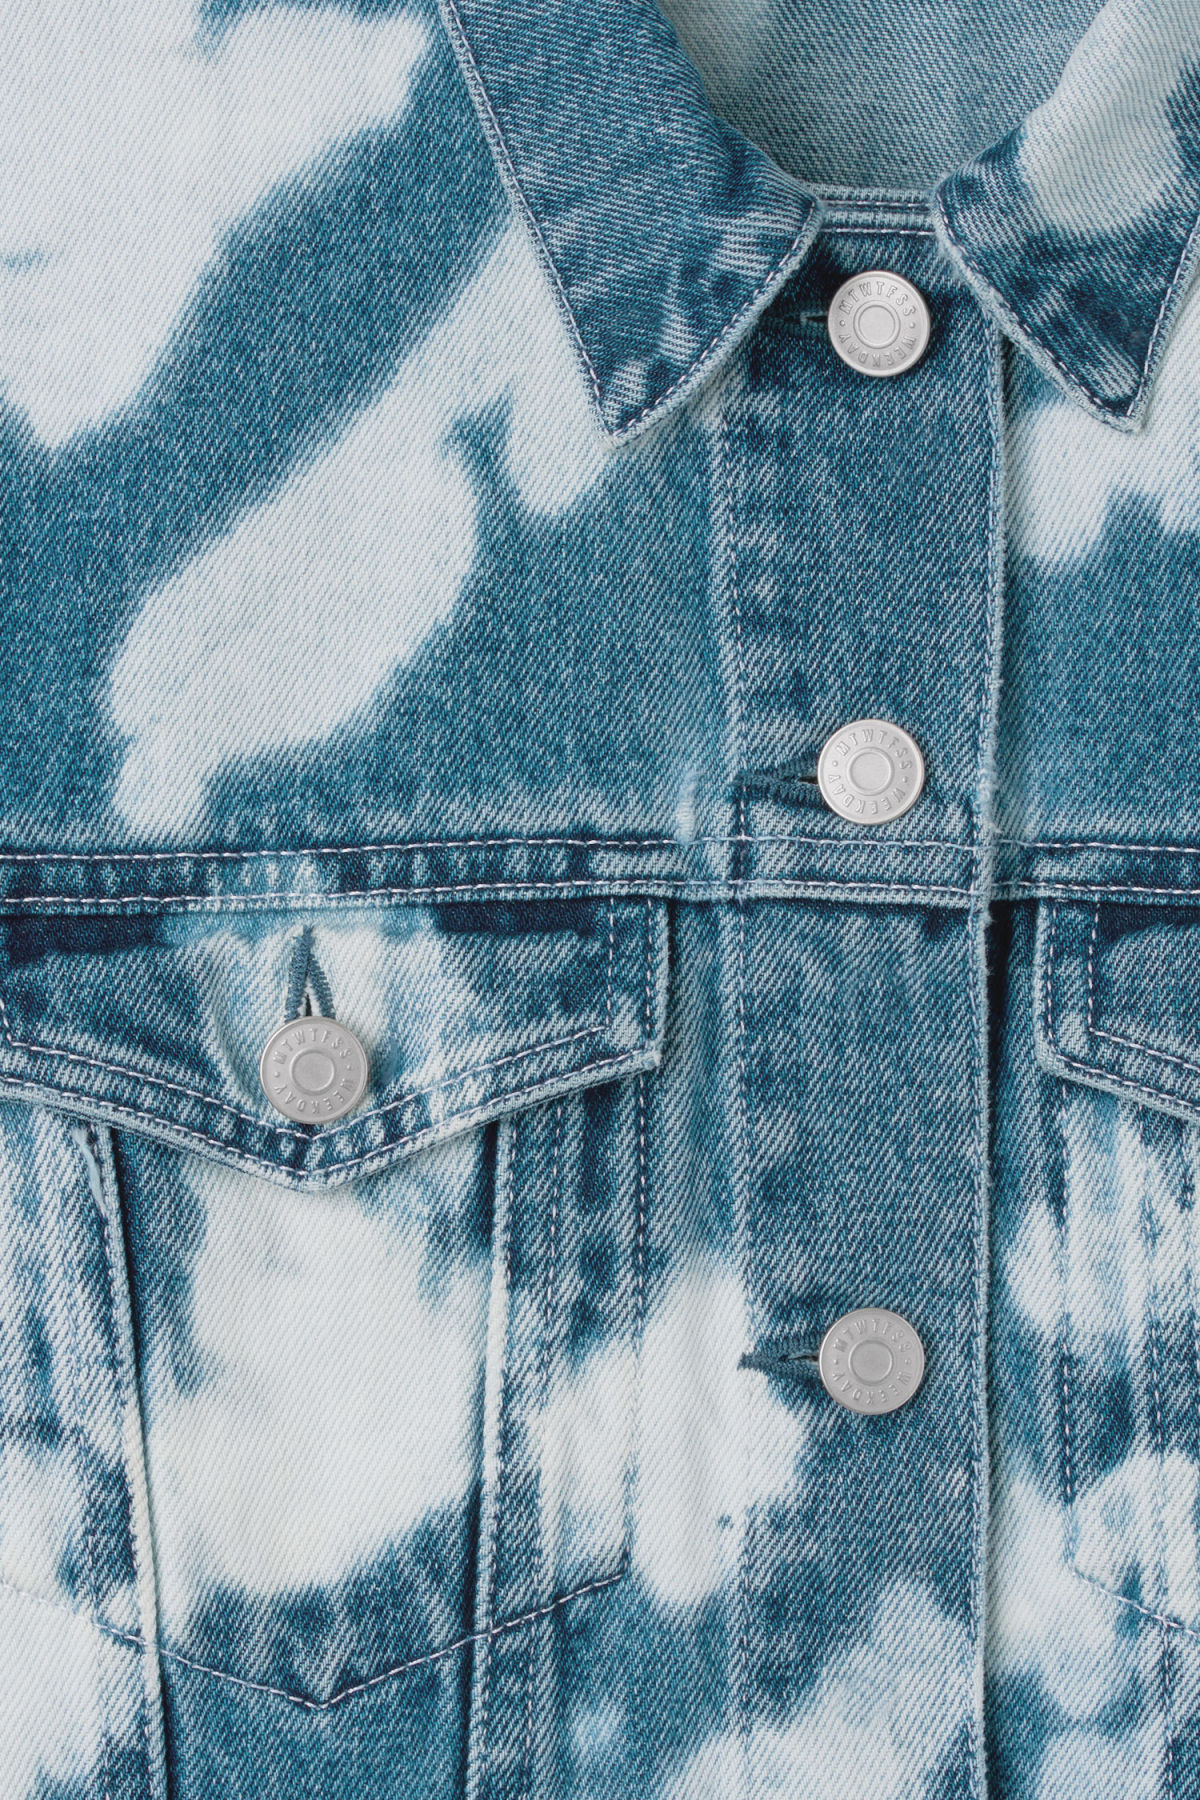 Detailed image of Weekday sky bleached jacket in blue